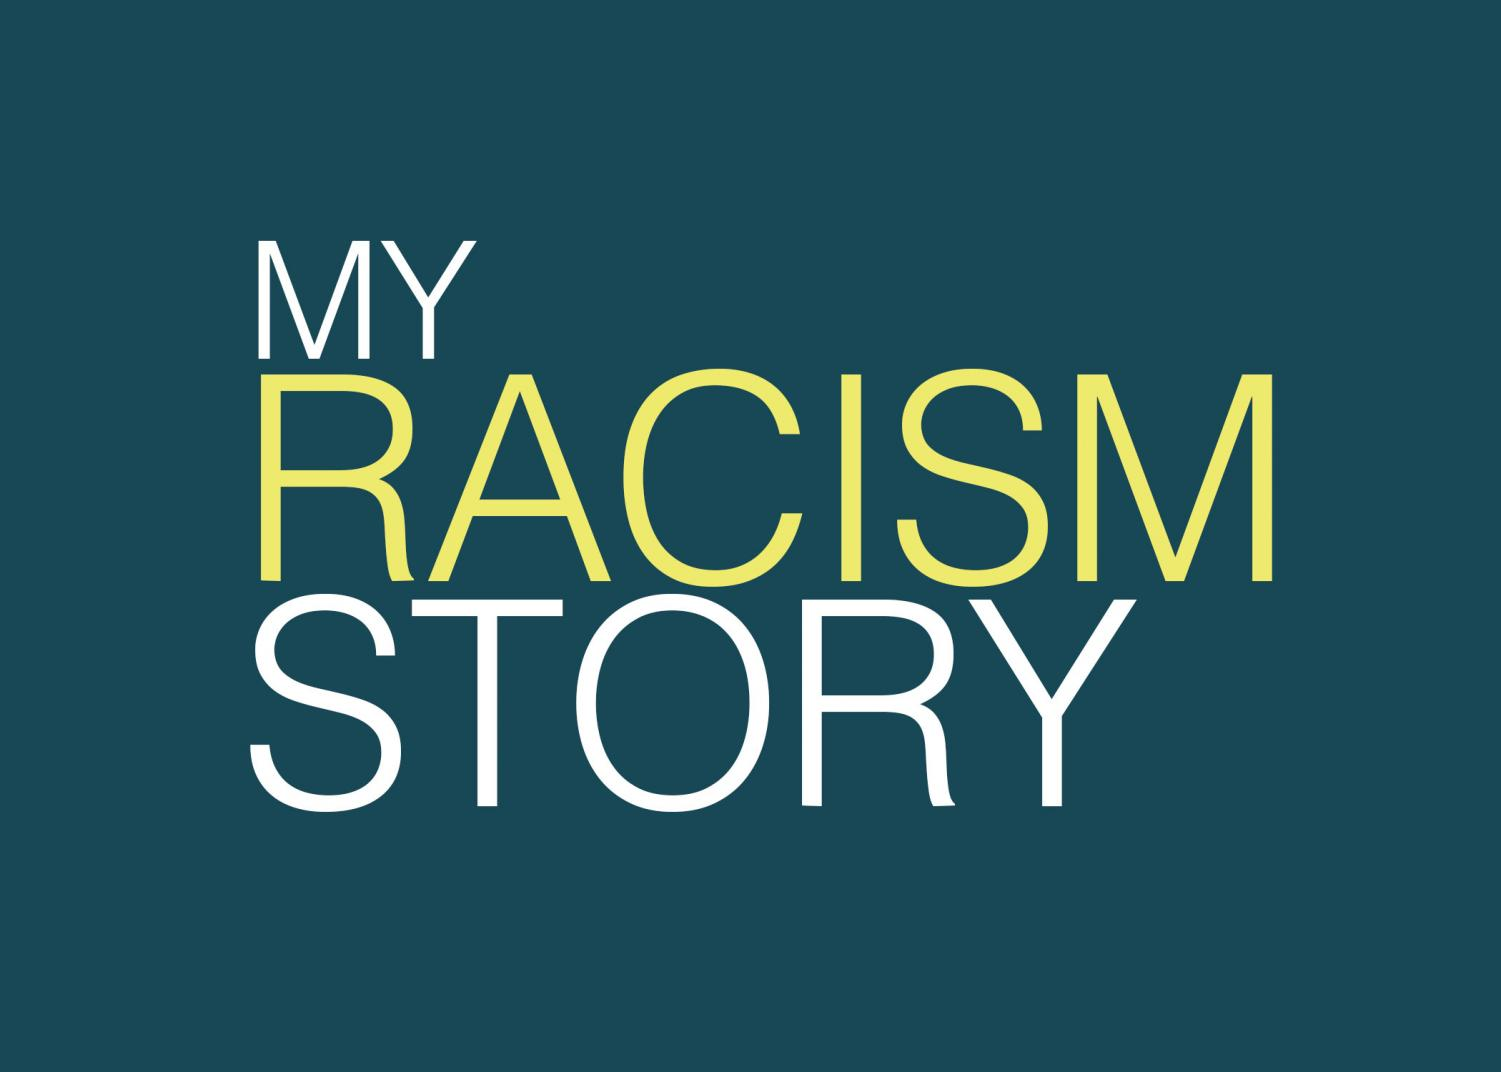 My Racism Story